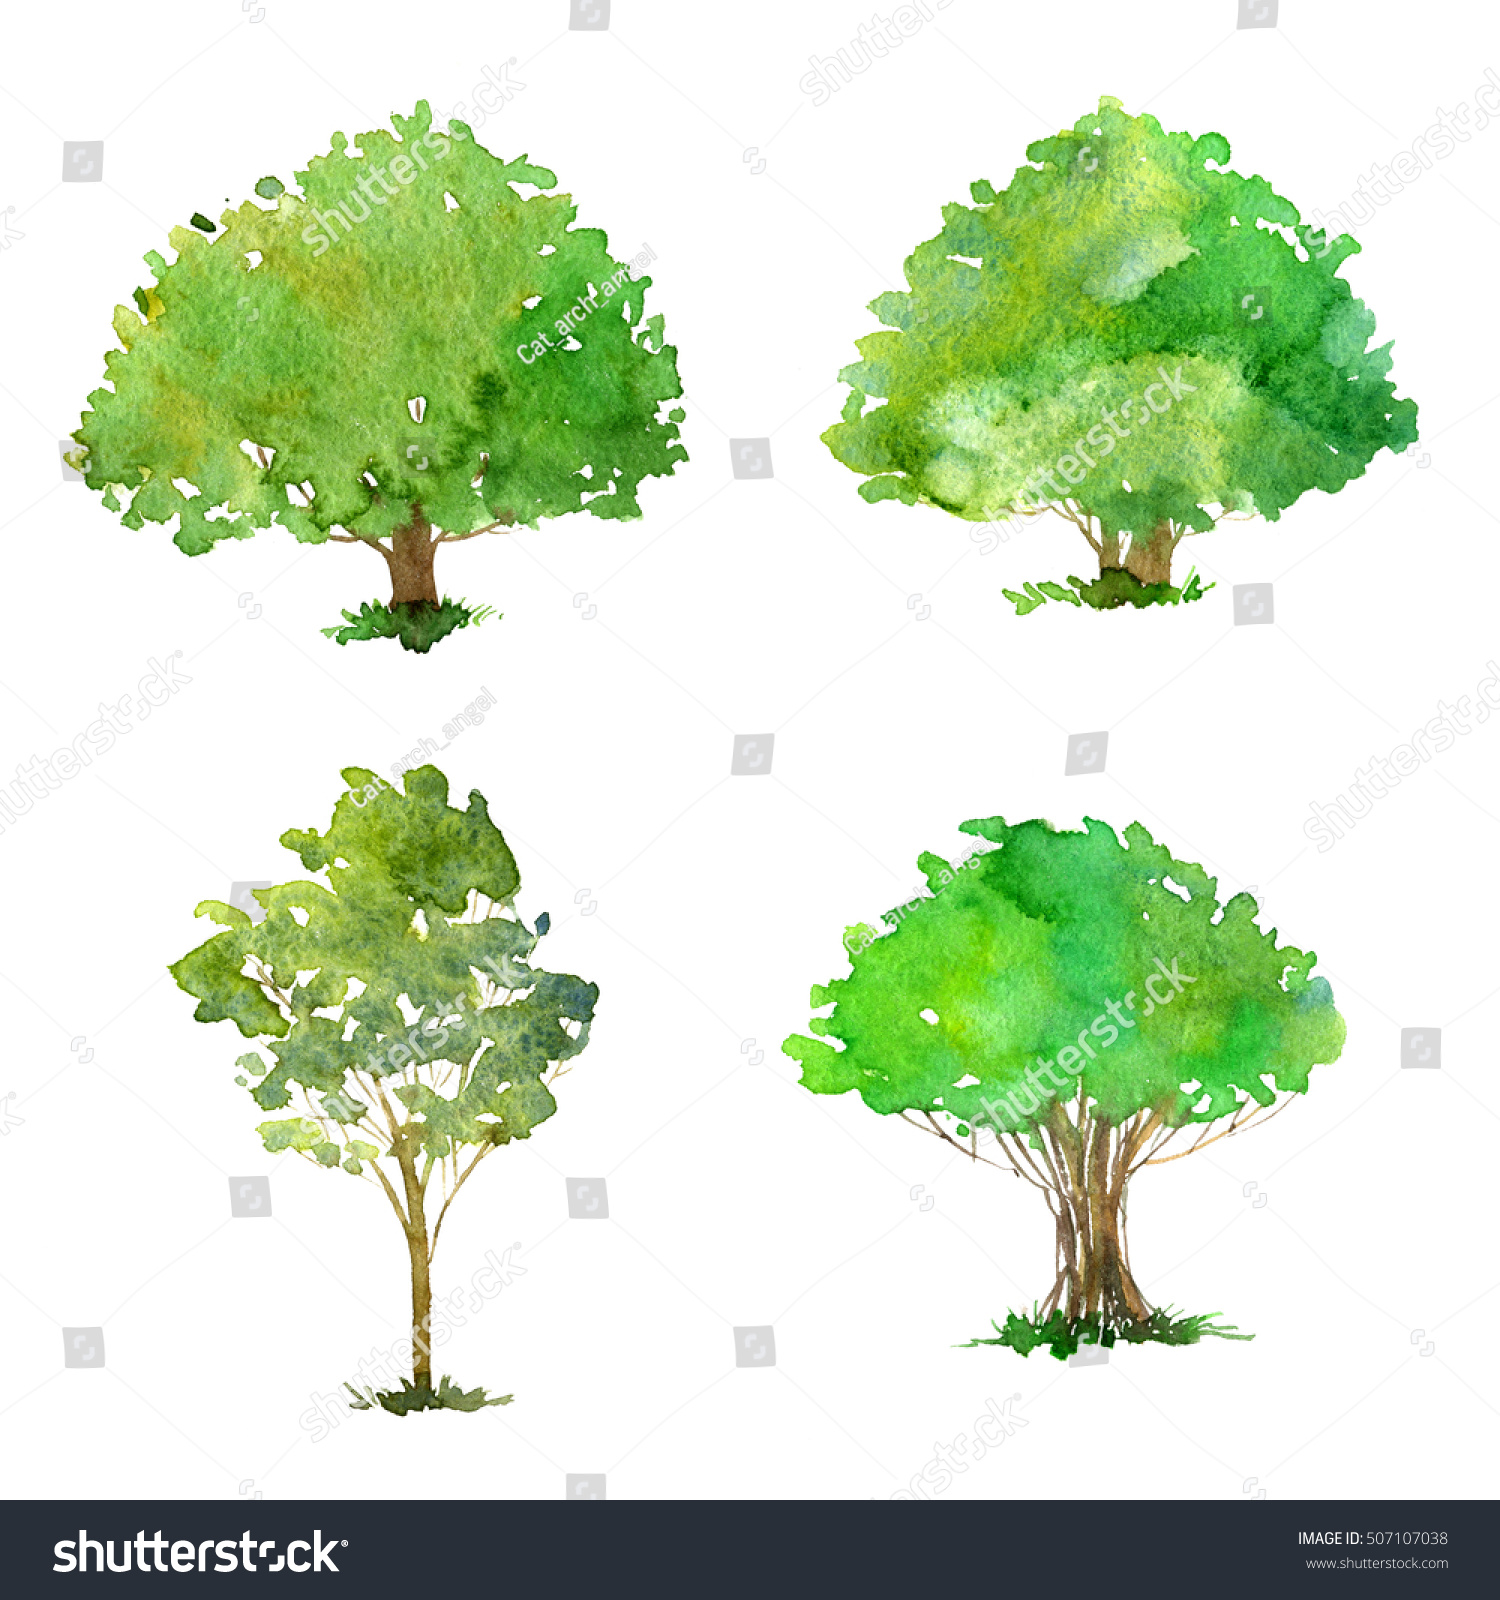 Set Trees Drawing By Watercolor Bushes Stock Illustration ... for Tree Drawing With Watercolor  75tgx